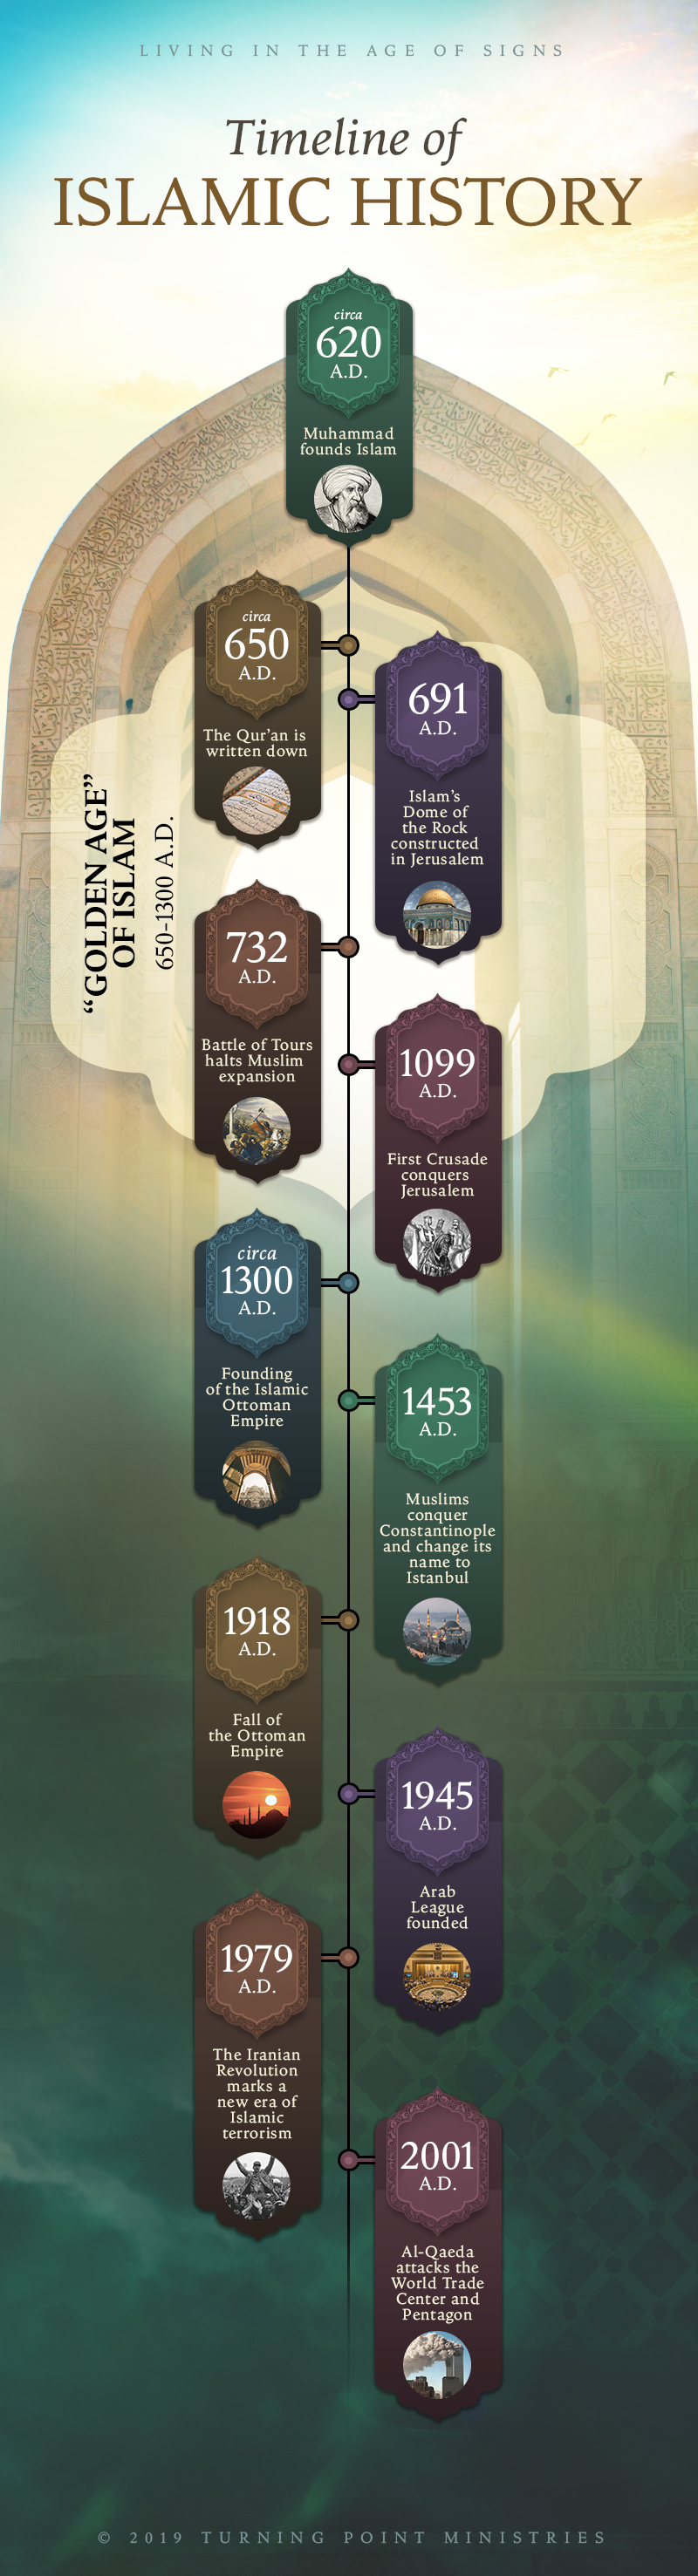 Timeline of Islamic History